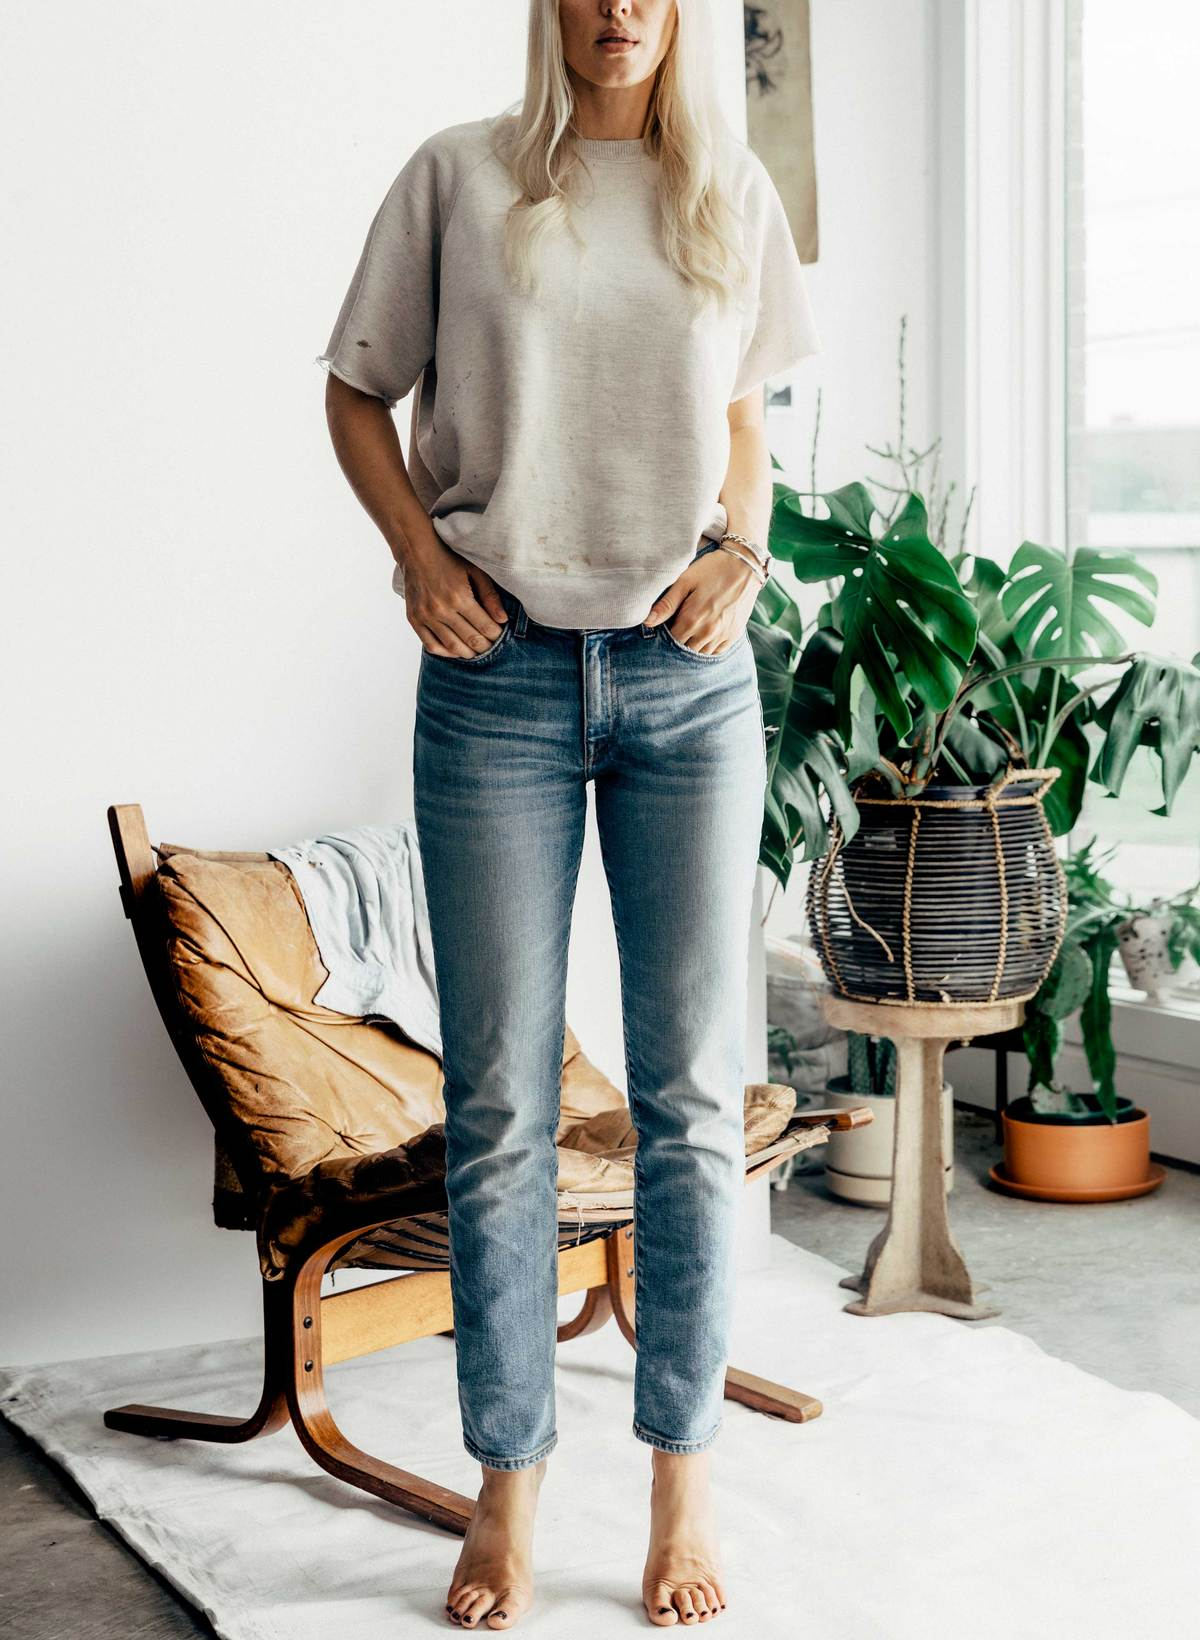 Jeans Review: Capsule Wardrobe Denim Made To Last